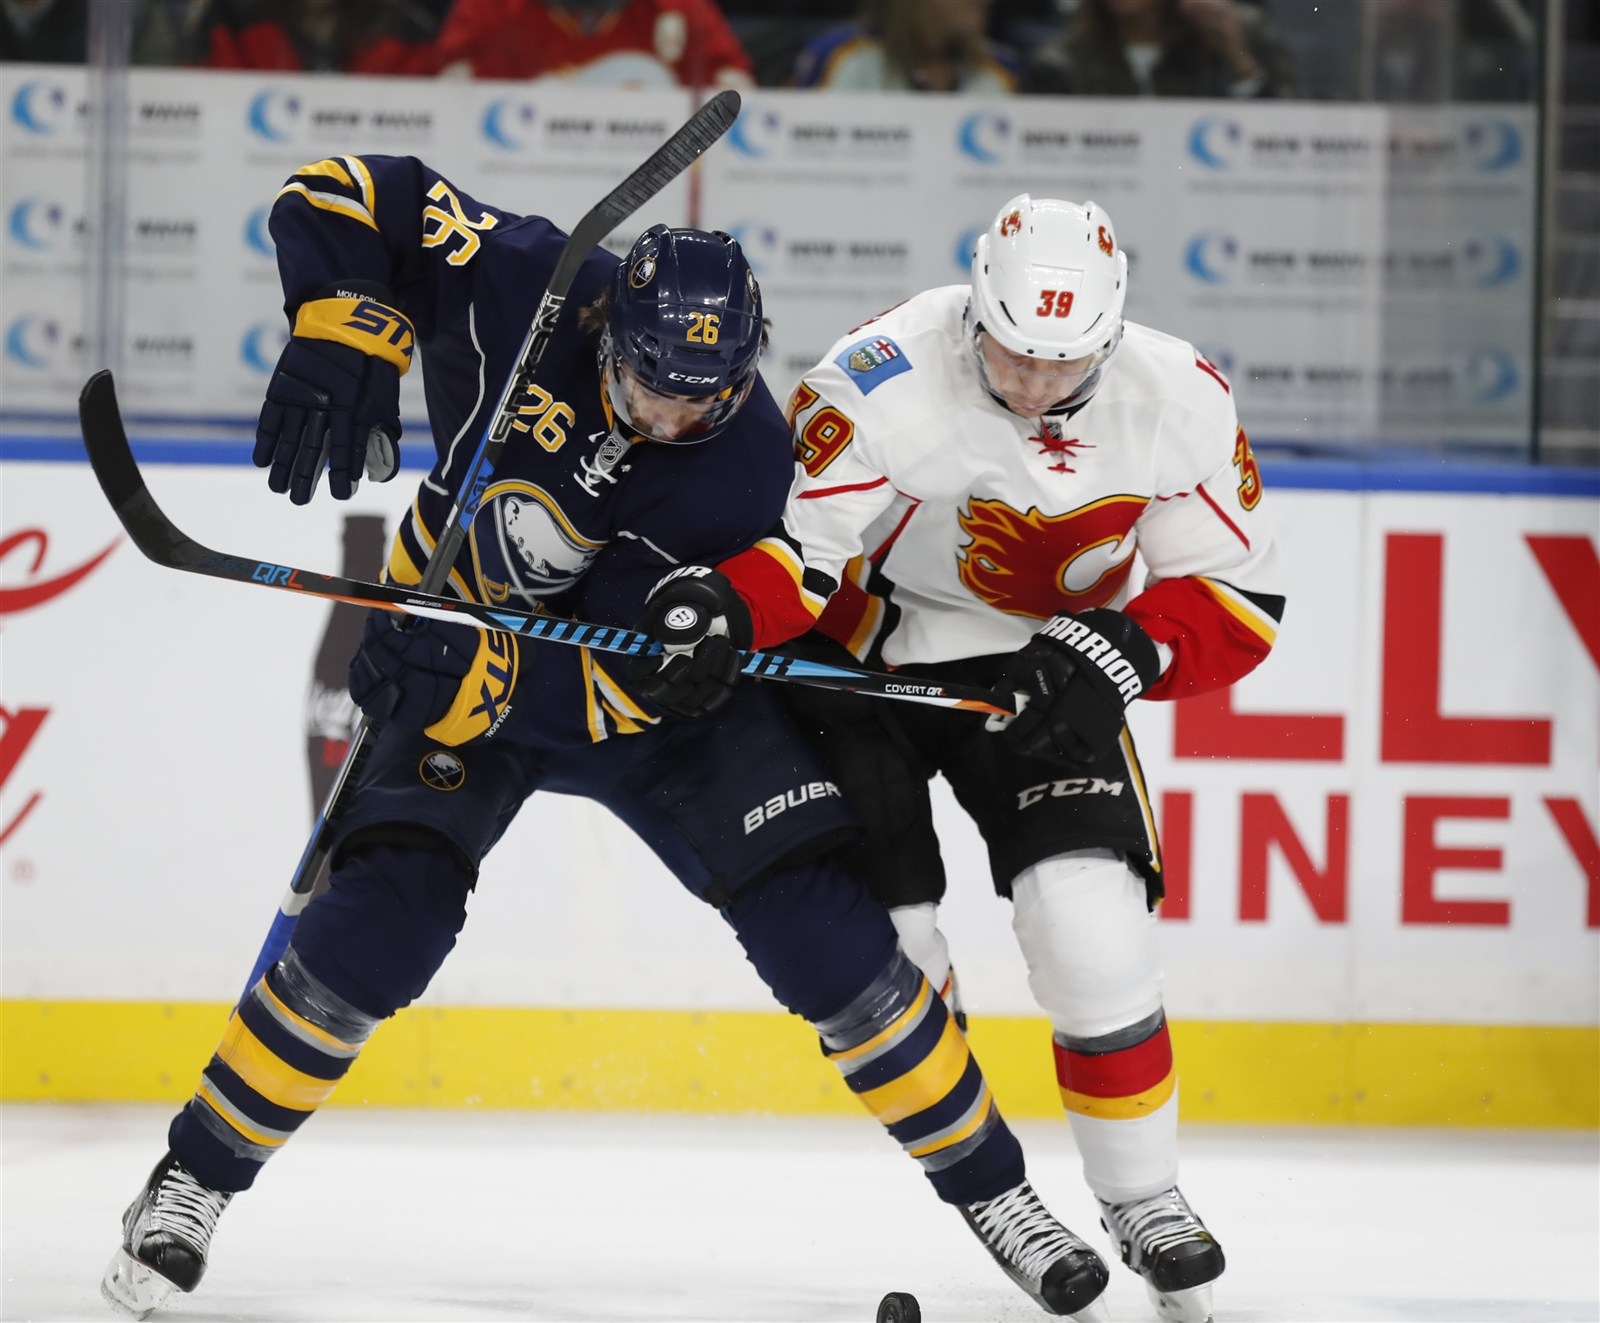 Matt Moulson is tied for the NHL lead in power play goals with six. (Buffalo News)